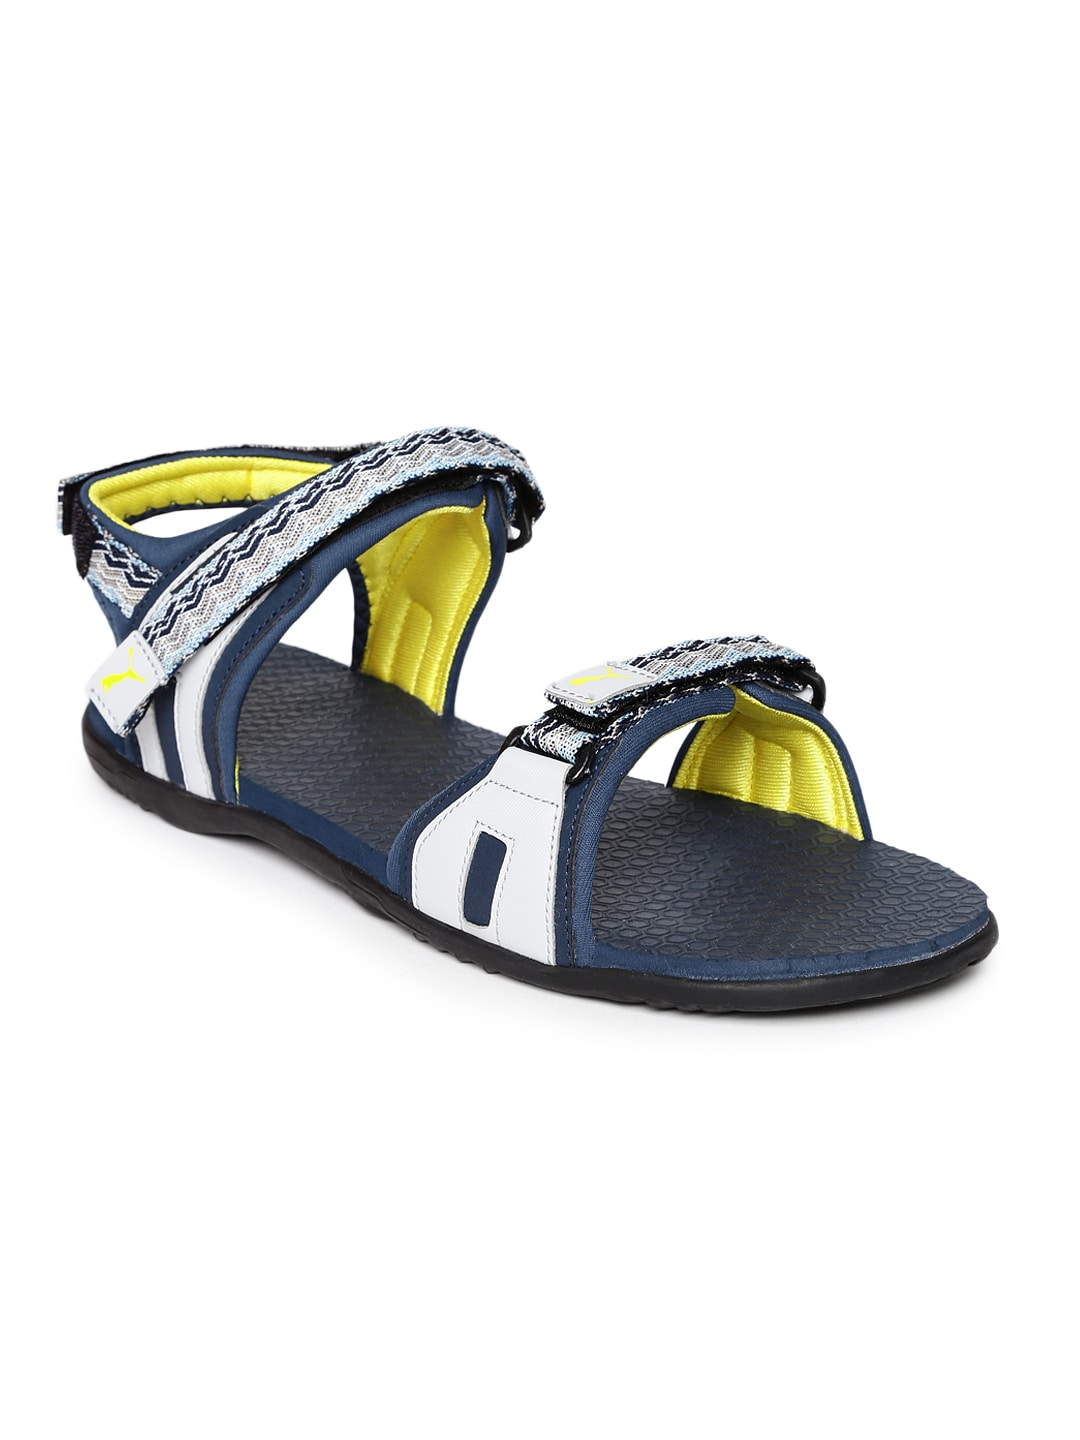 380be2031c6 Puma 18937802 Men Navy And Grey Zoom Sports Sandals- Price in India